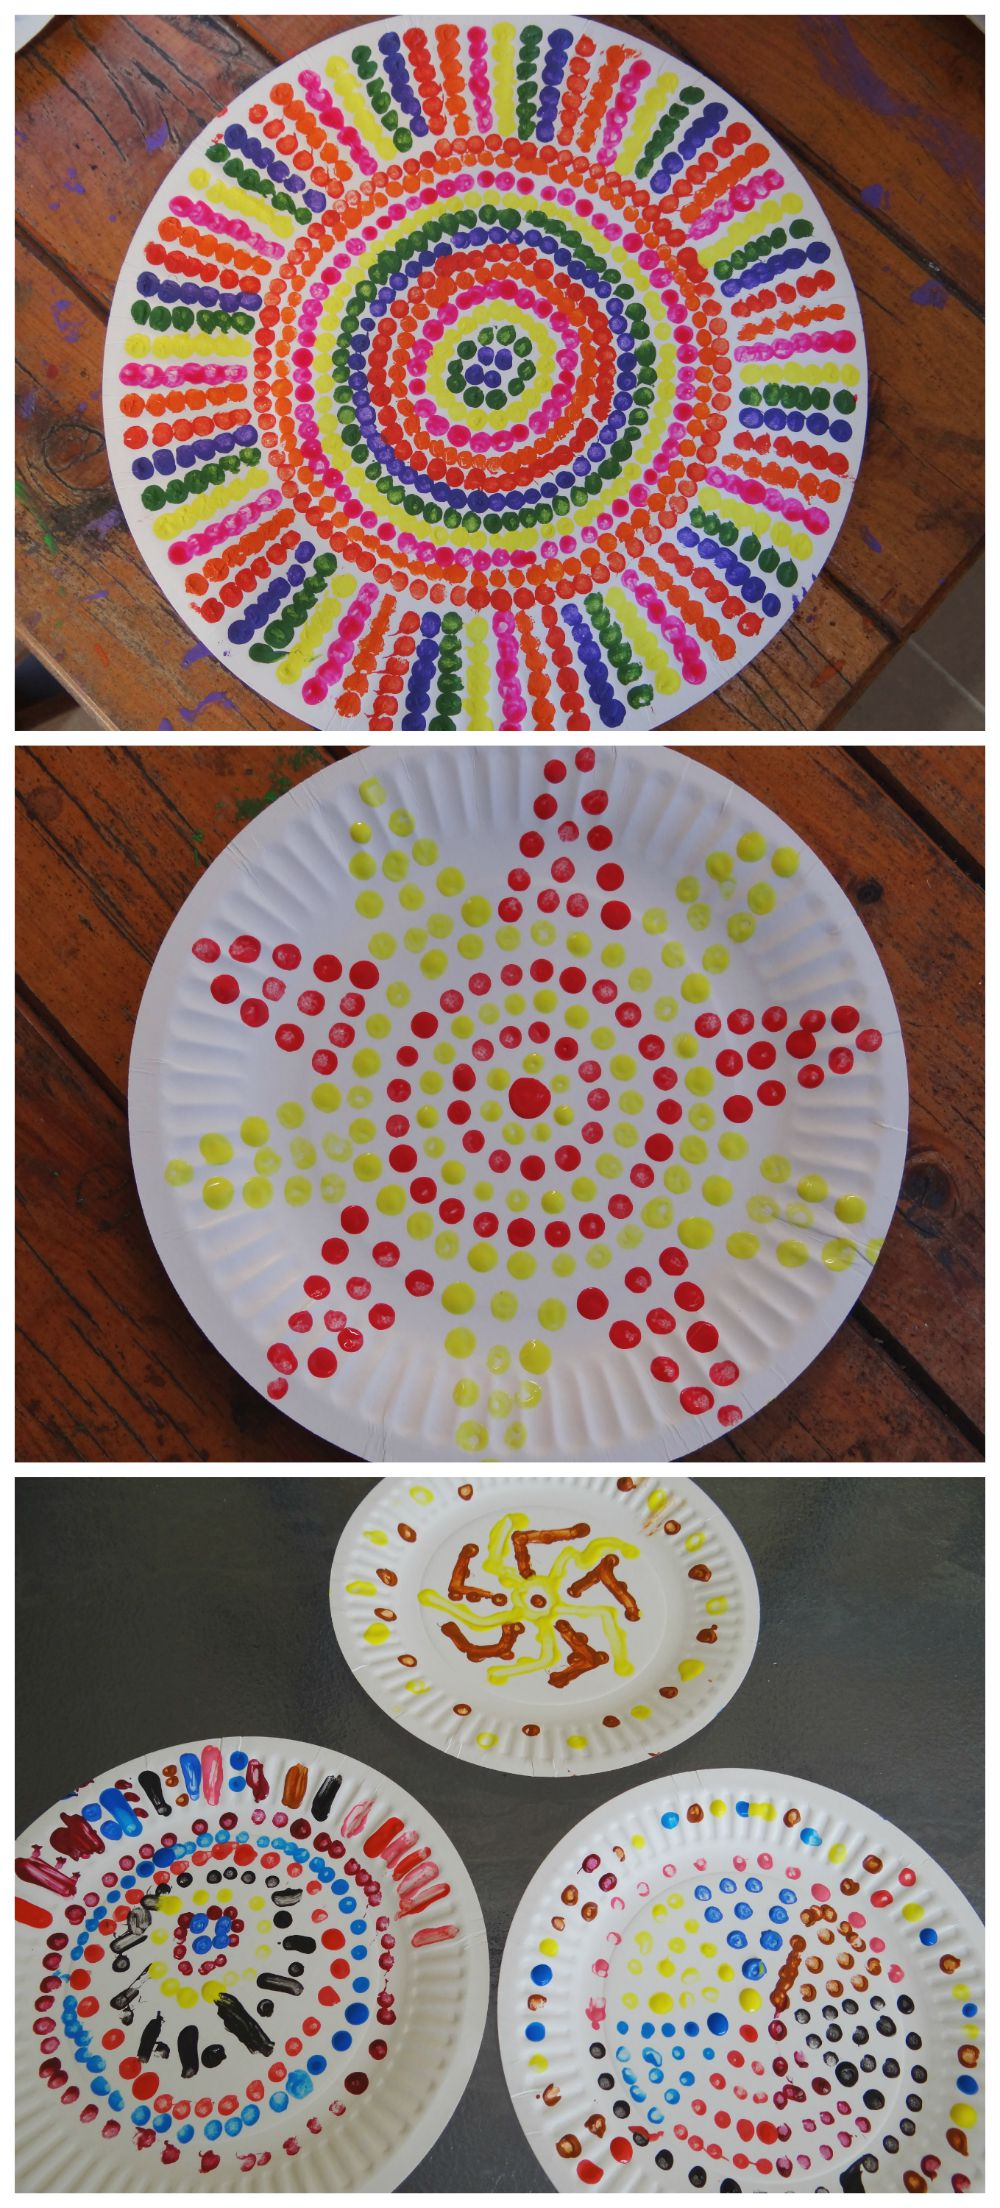 Dot painting be a fun mum Fun painting ideas for toddlers